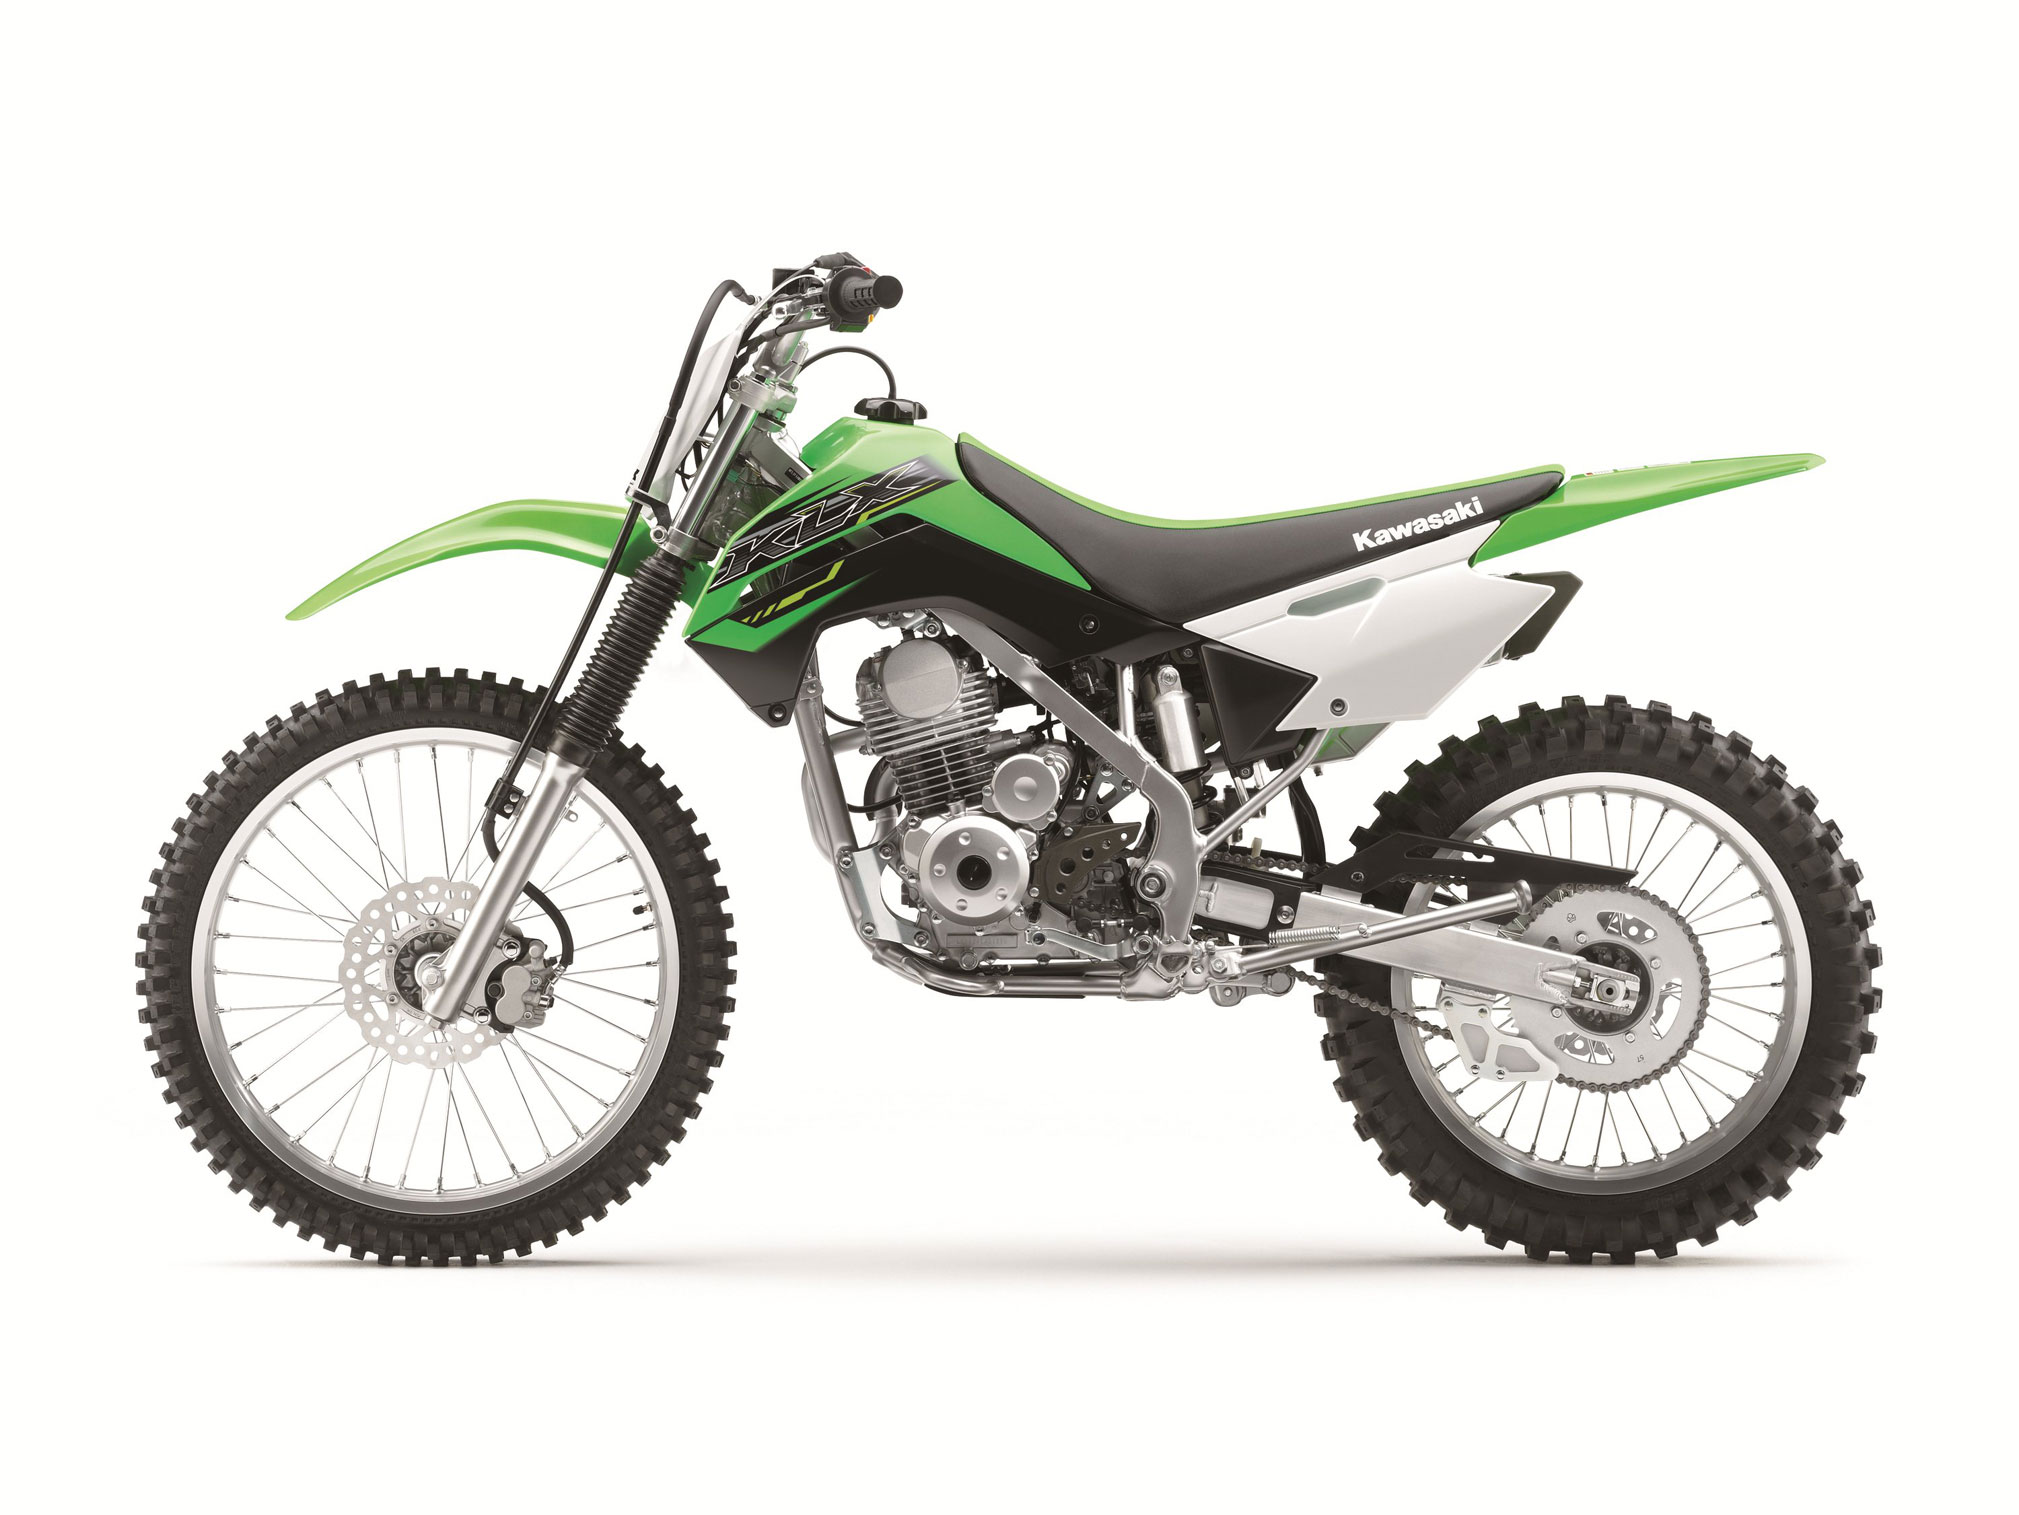 2019 Kawasaki KLX140G Guide • Total Motorcycle